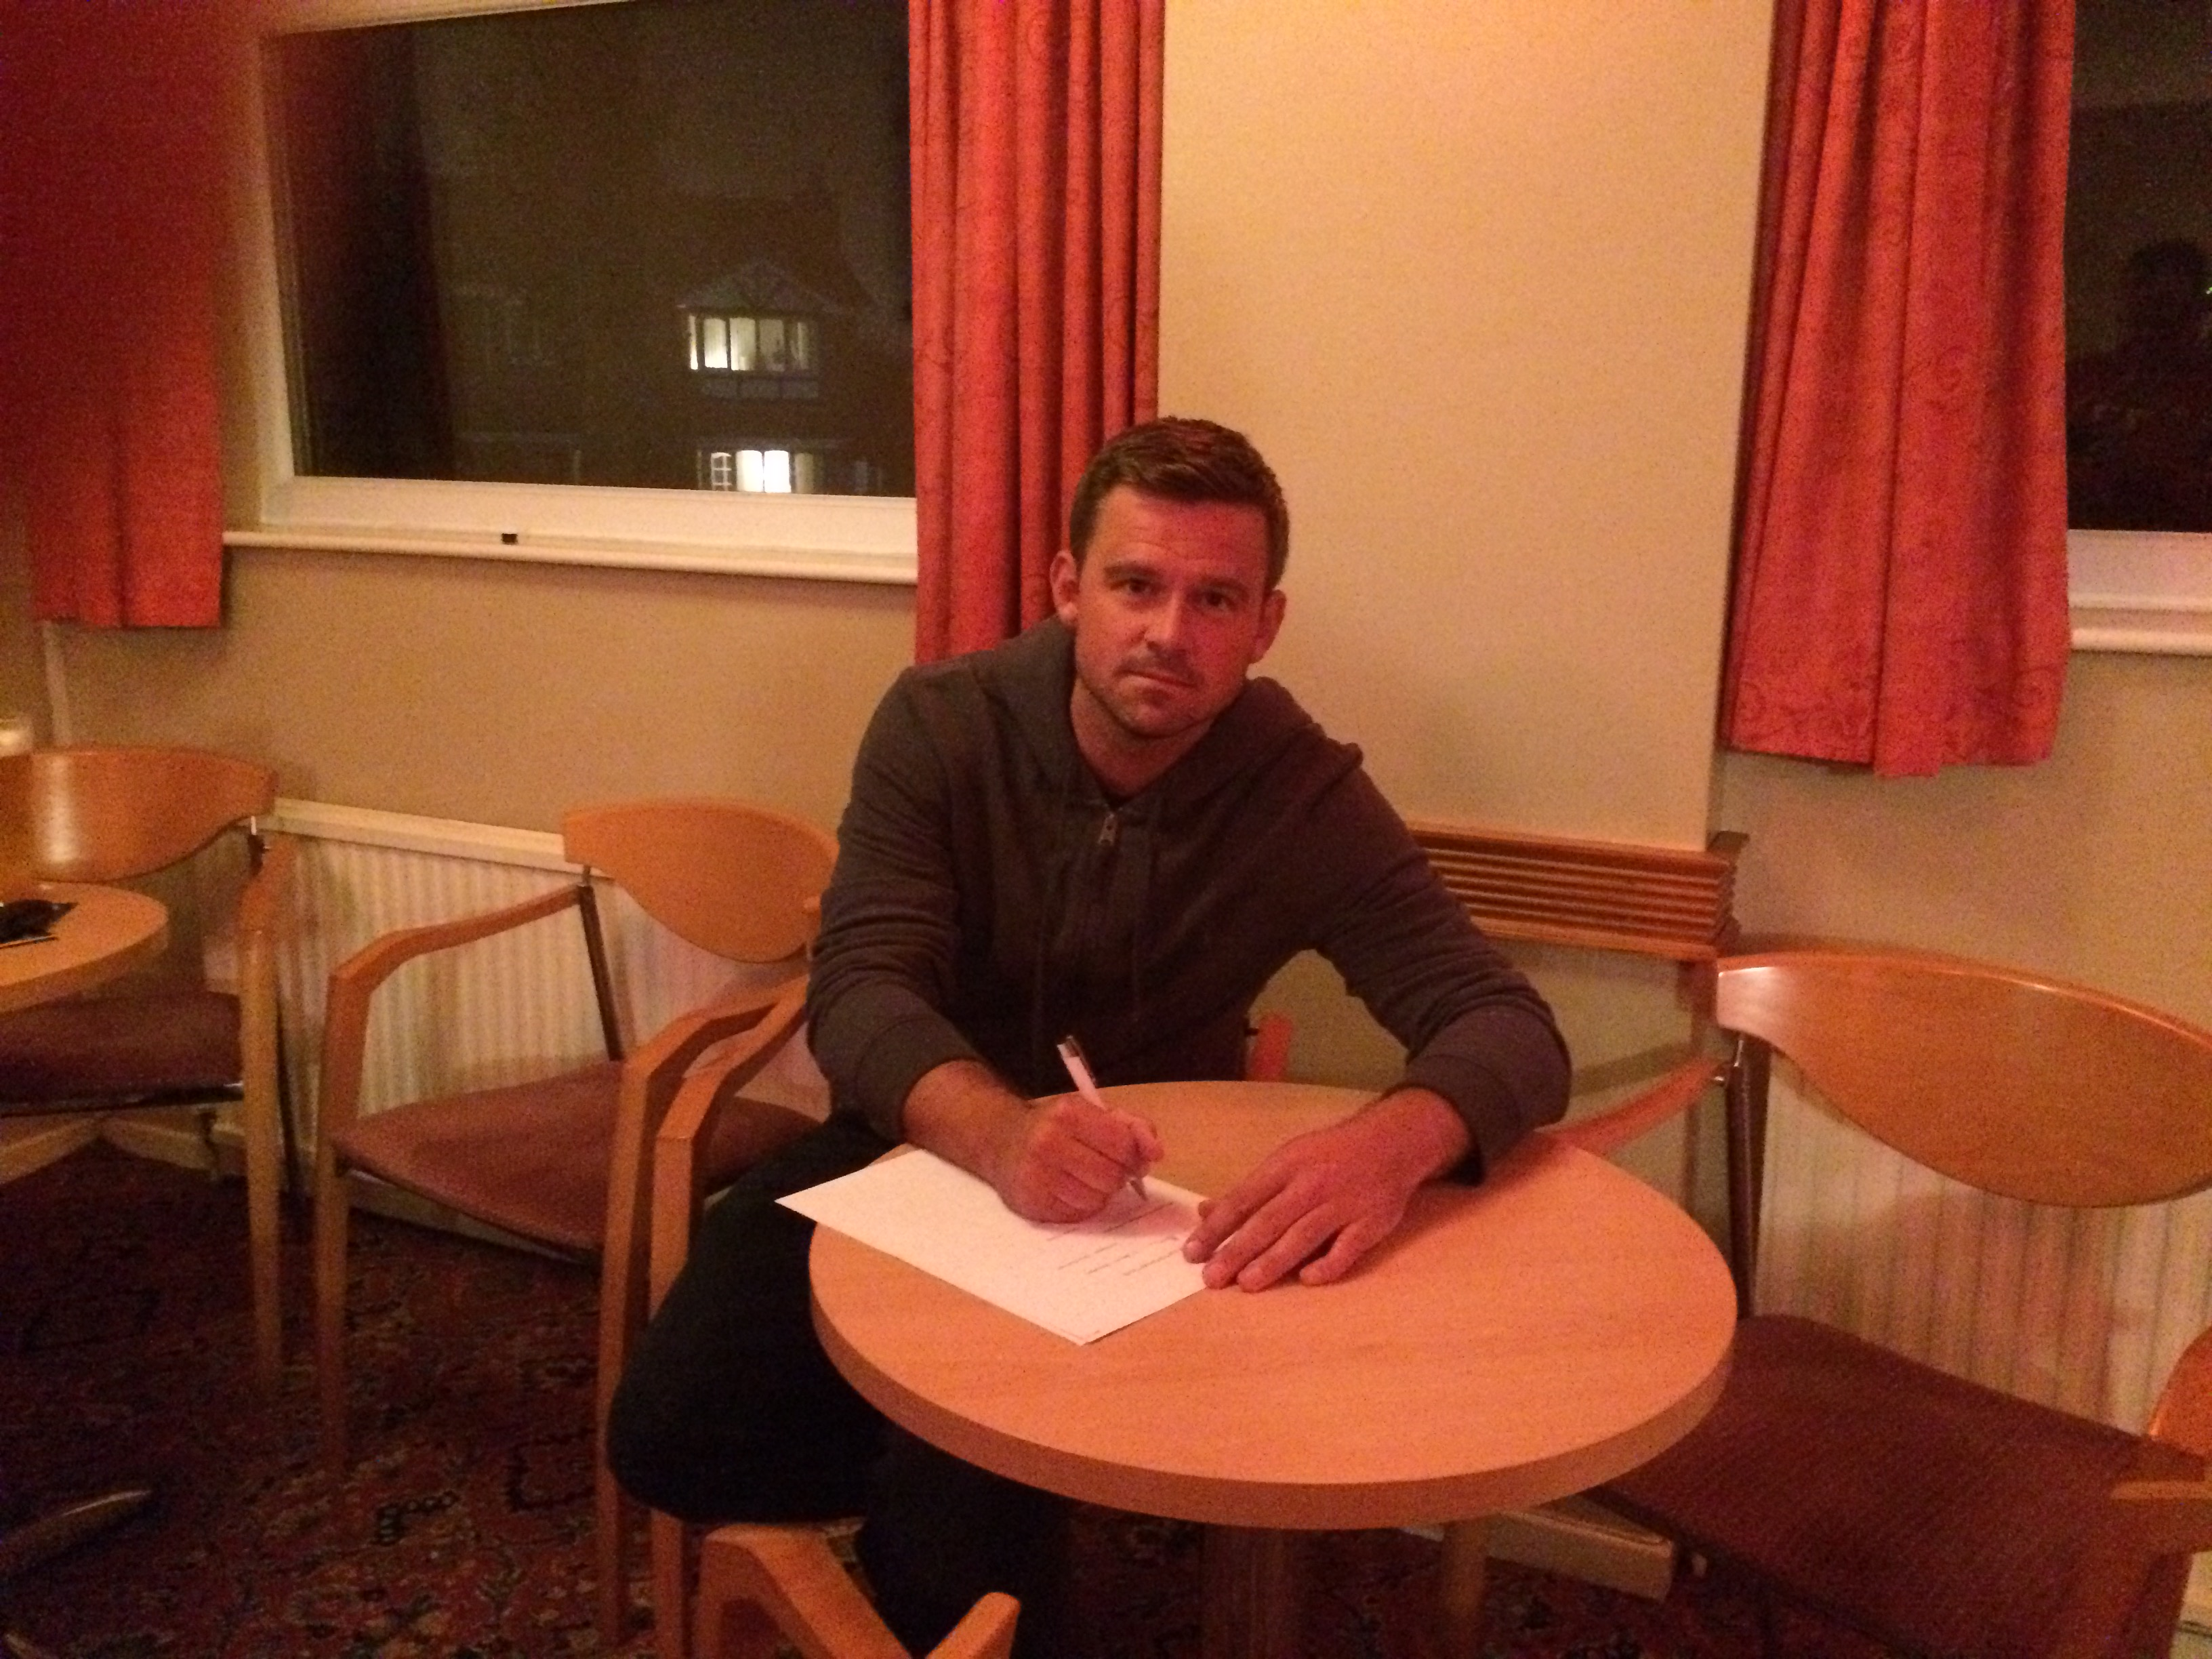 Gareth Cross puts pen to paper